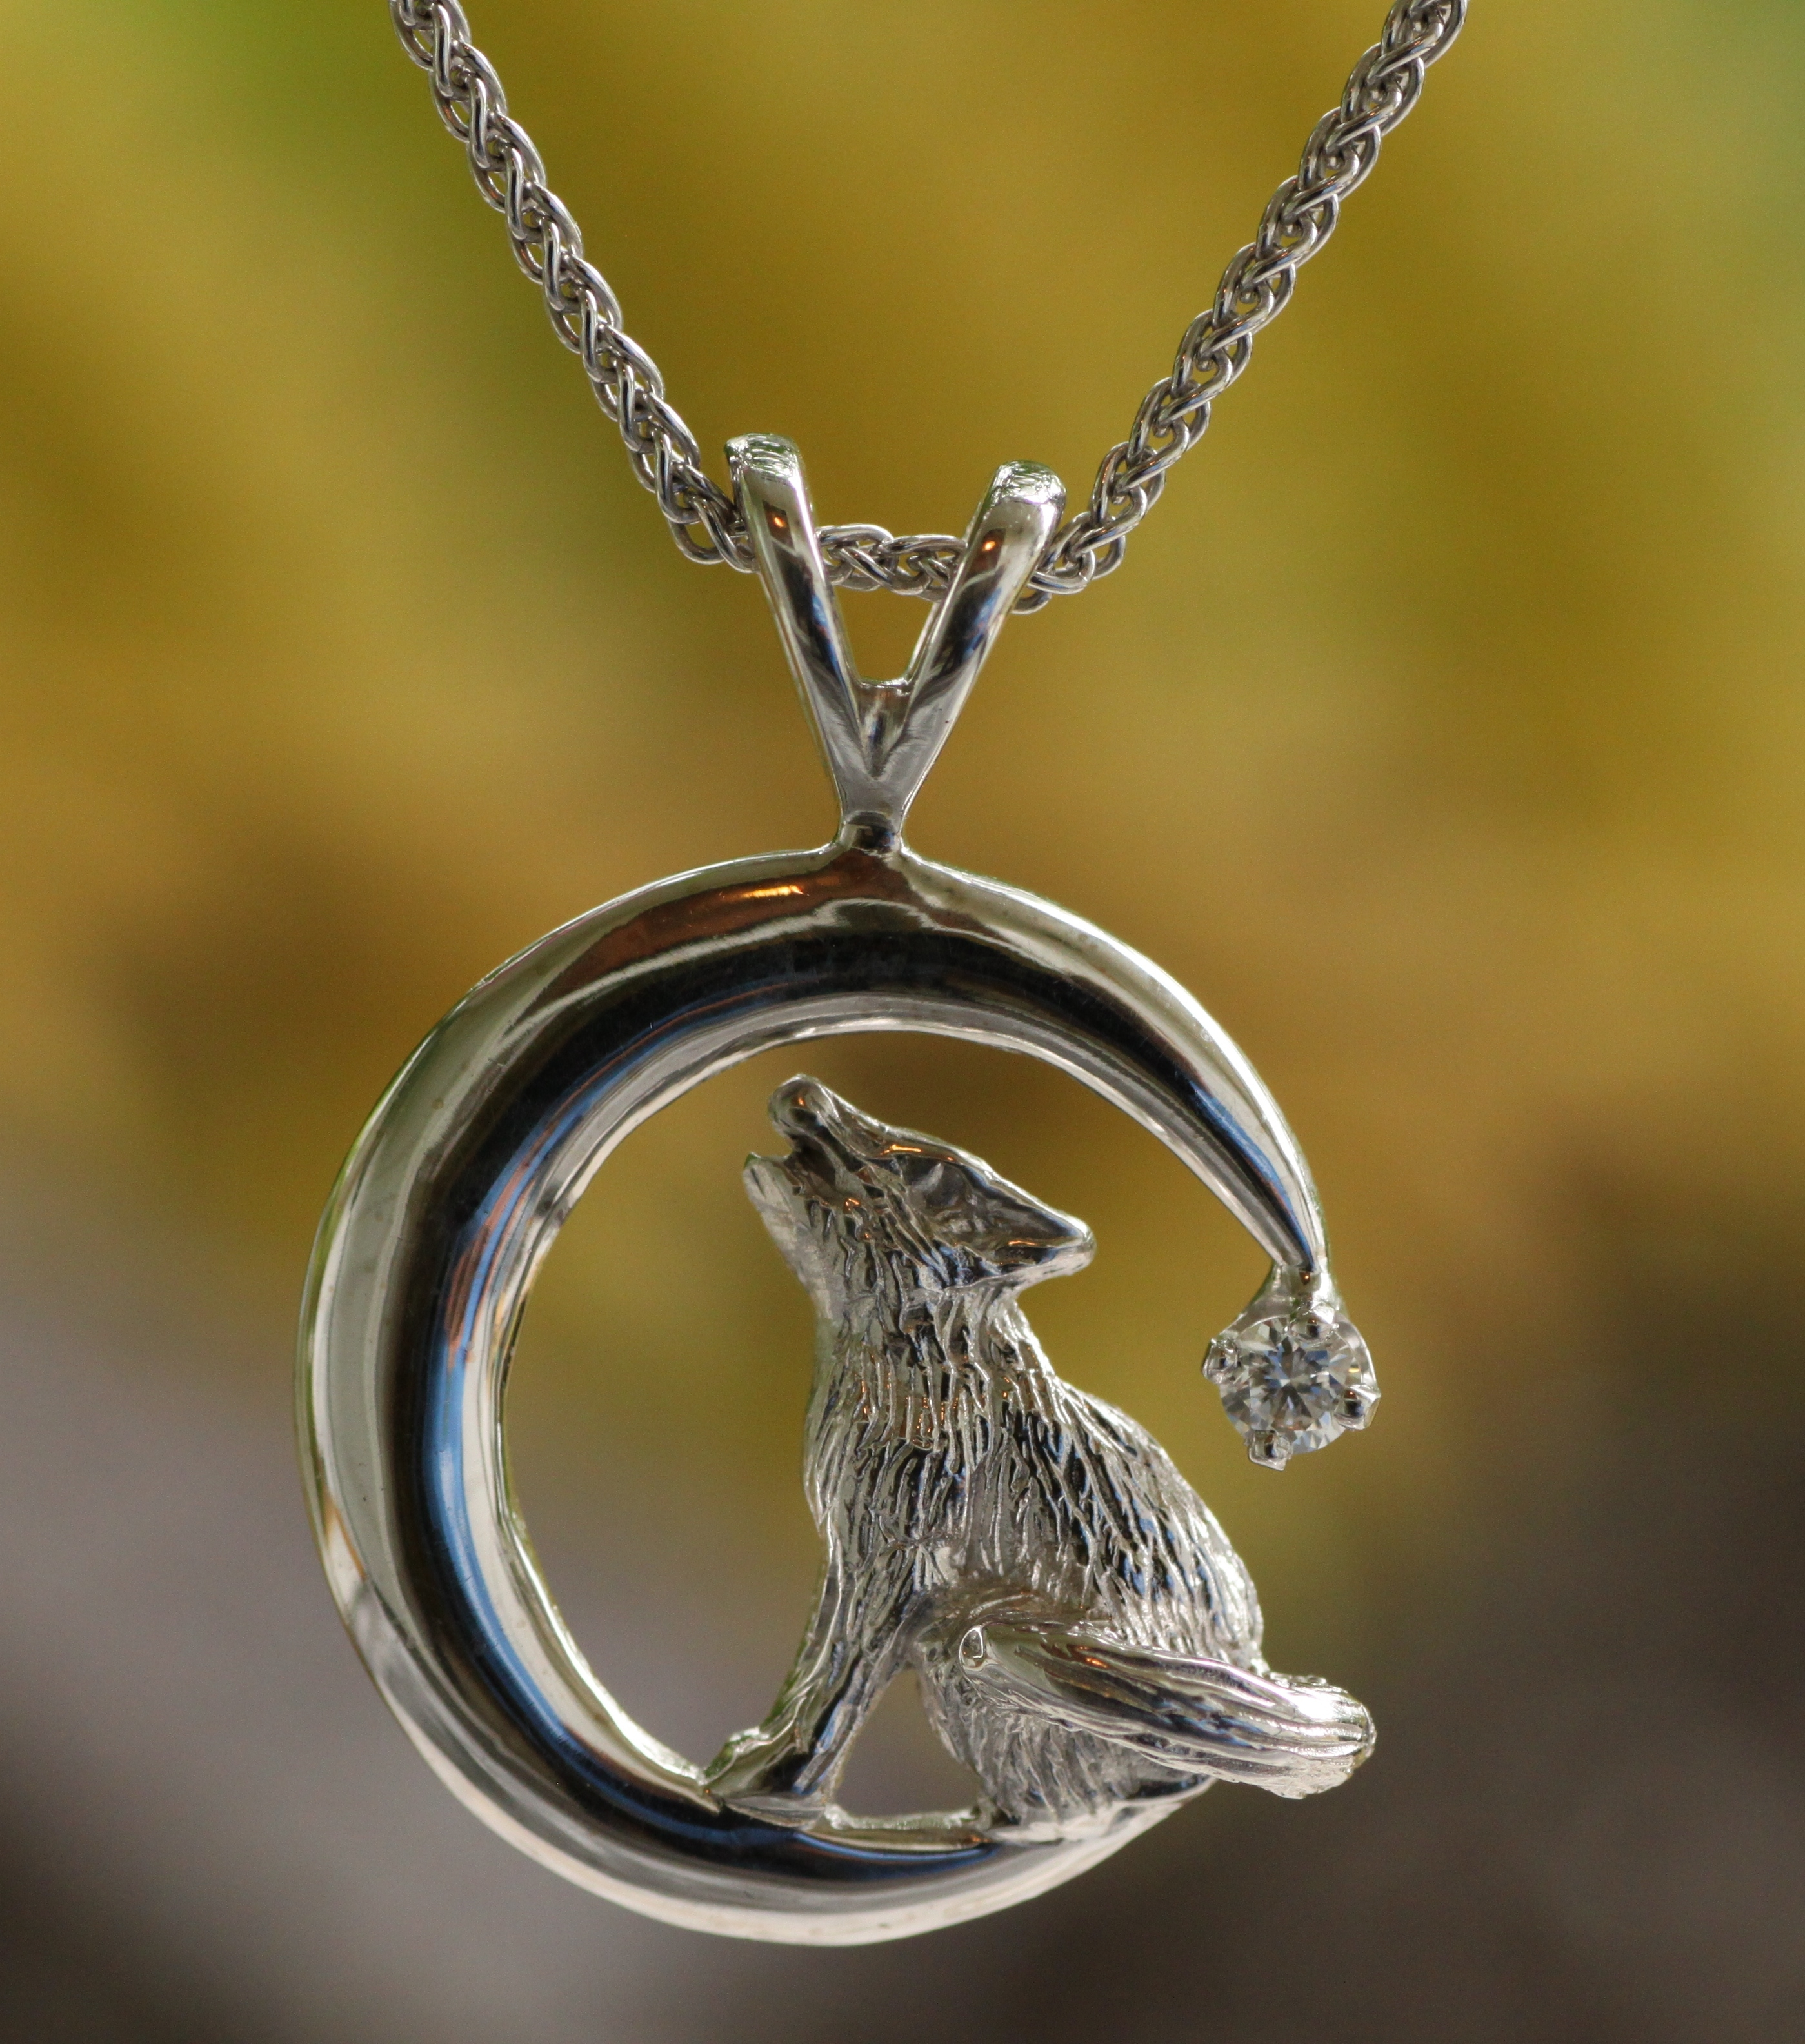 Howling Wolf Pendant in 14kt White Gold with Diamond